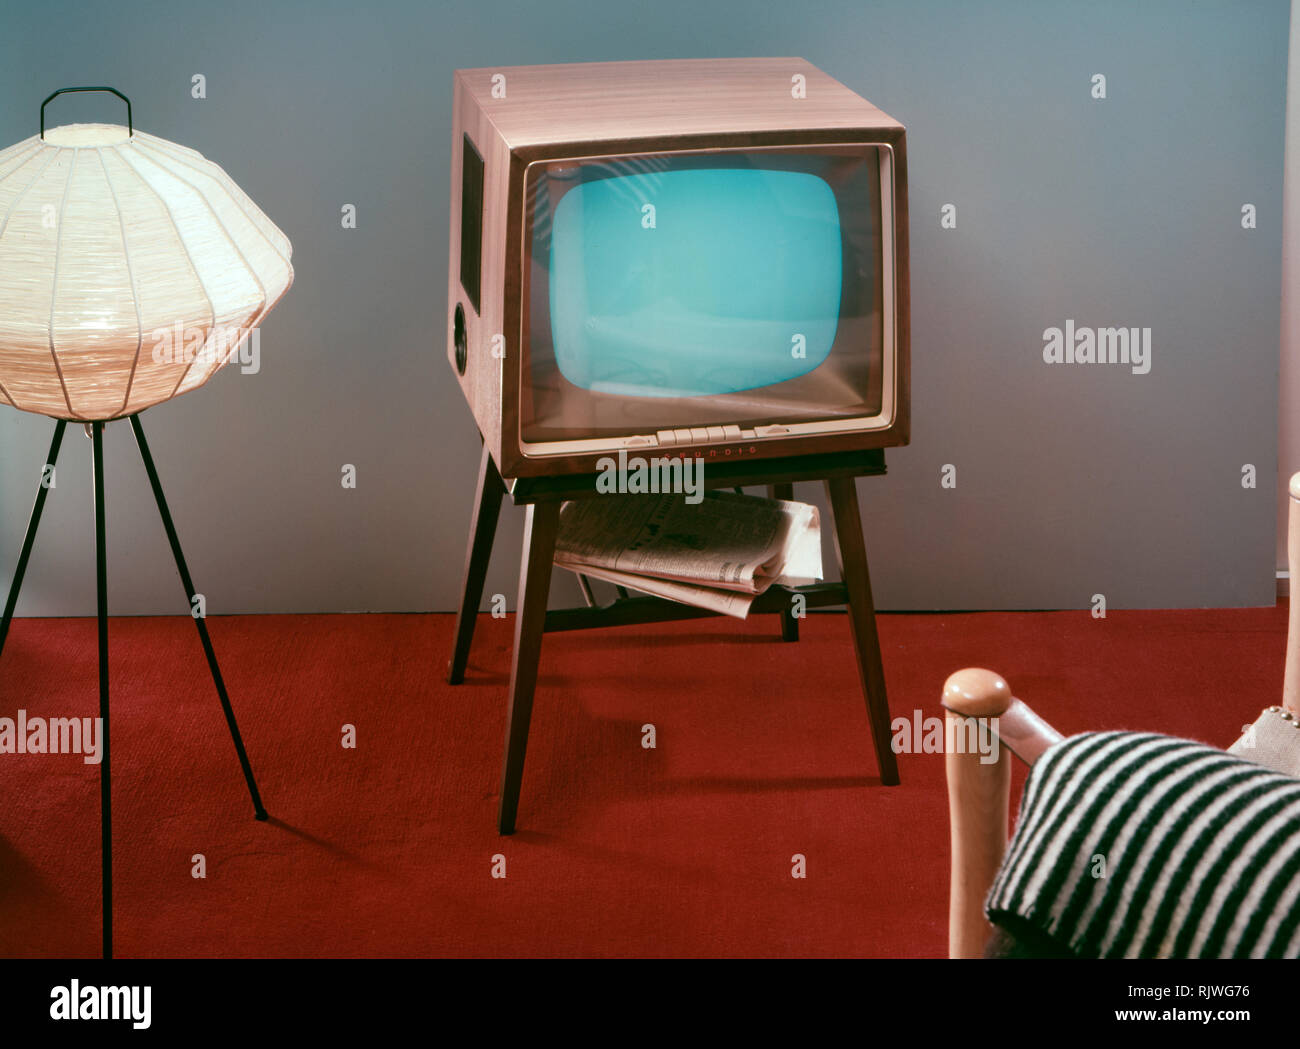 Television in the 1950s. A Grundig television set that was available for customers 1957. A typical 1950s design with a wooden case standing on thin legs. ref BV65-3 - Stock Image